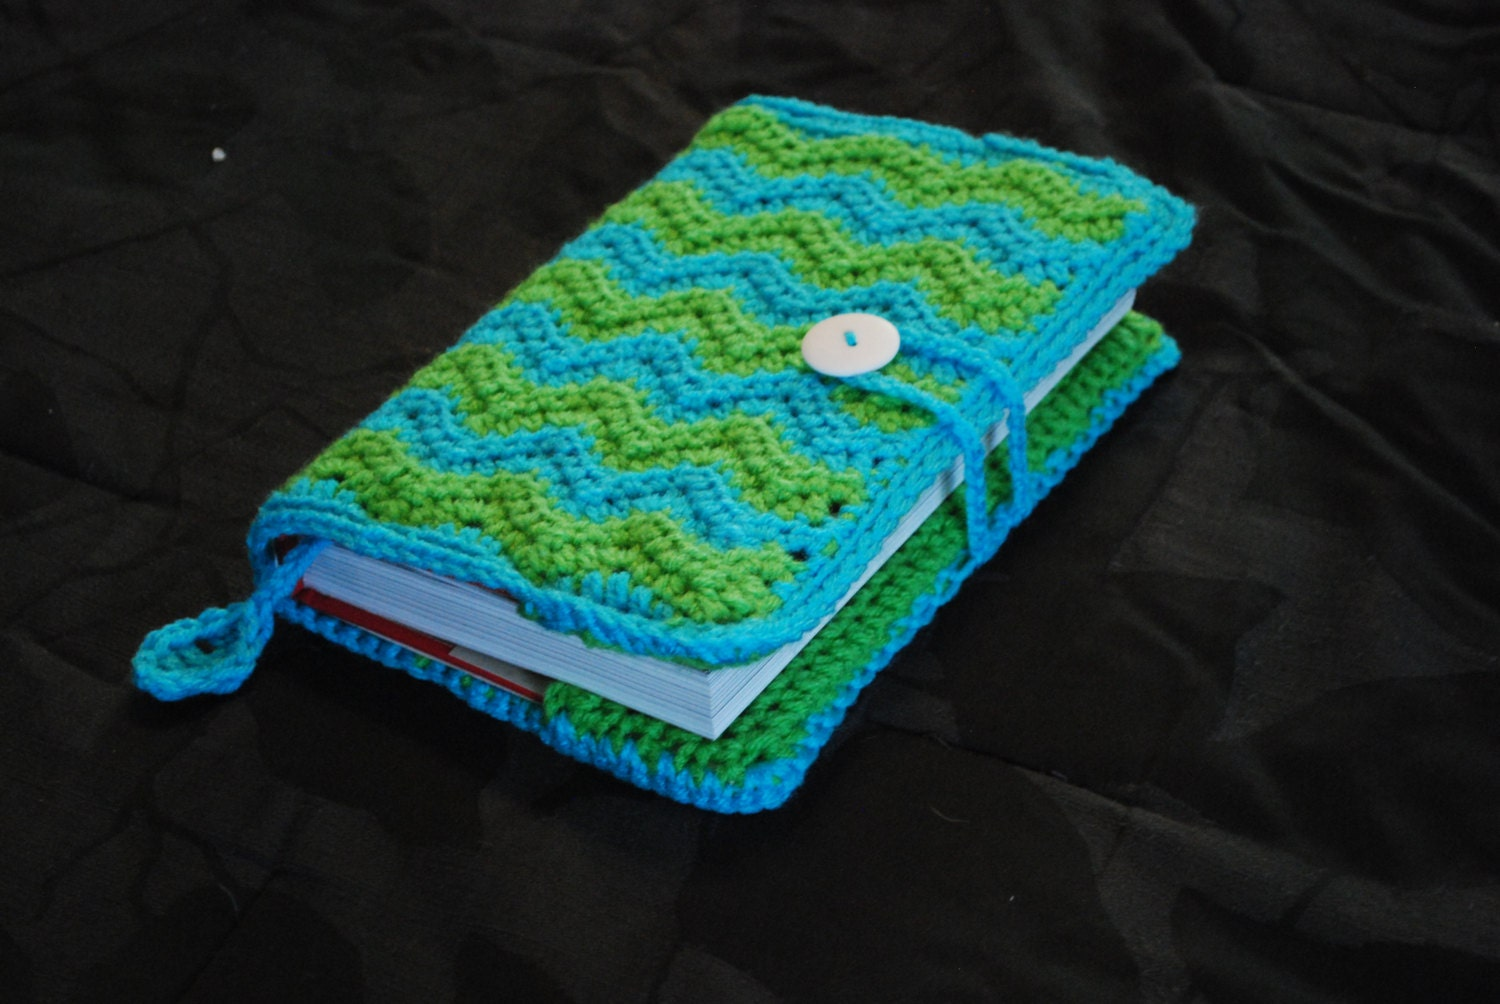 Book Cover Crochet Instructions : Crochet book cover chevron pattern with loop and button